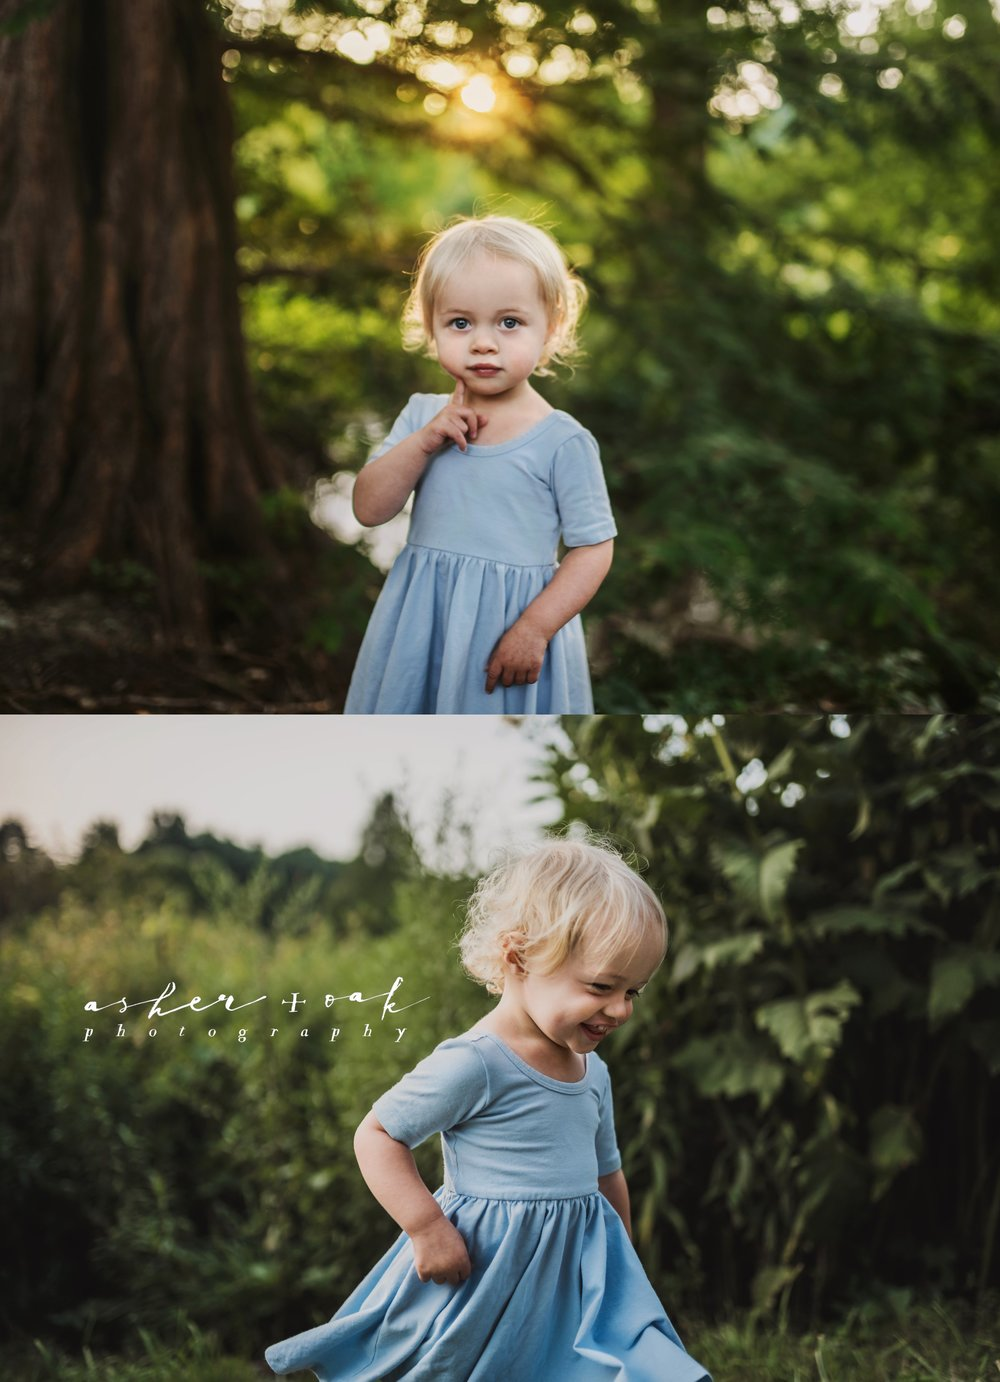 Massachusetts_Family_Photographer_Portrait_Toddler_Arnold_Arboretum_Boston_Asher_and_Oak_Photography.jpg